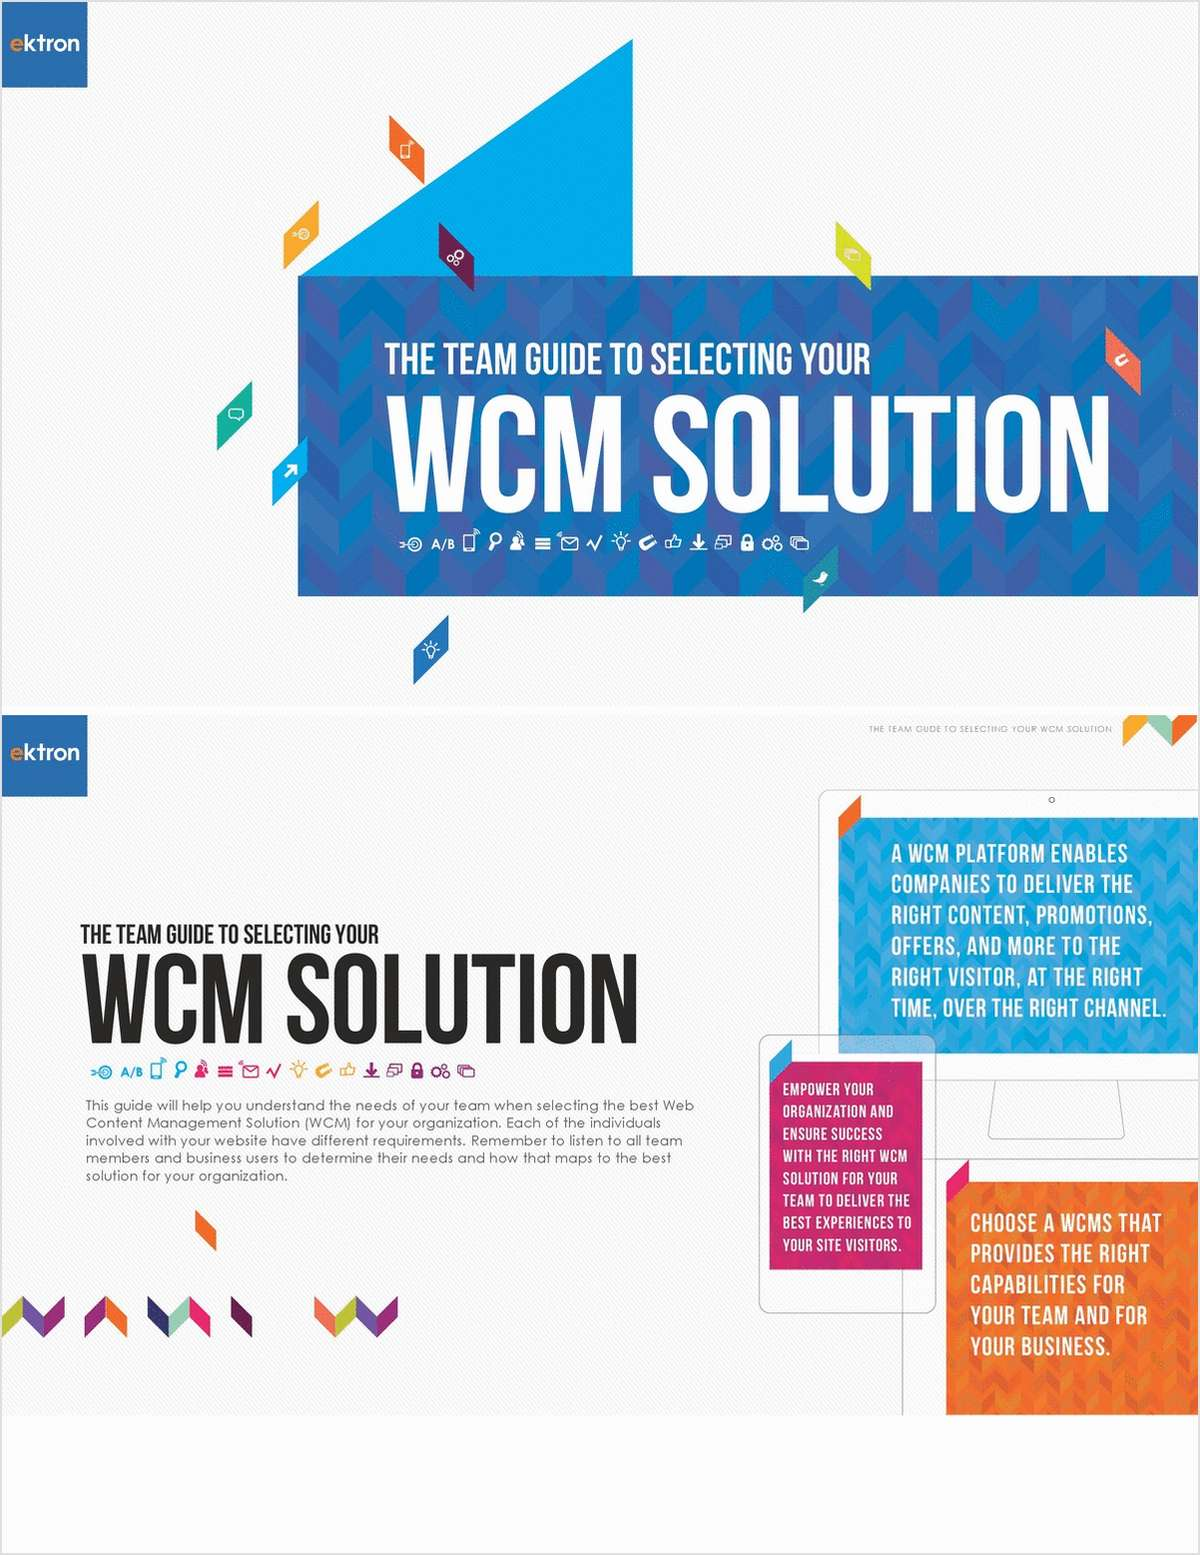 The Team Guide to Selecting Your Web Content Management Solution